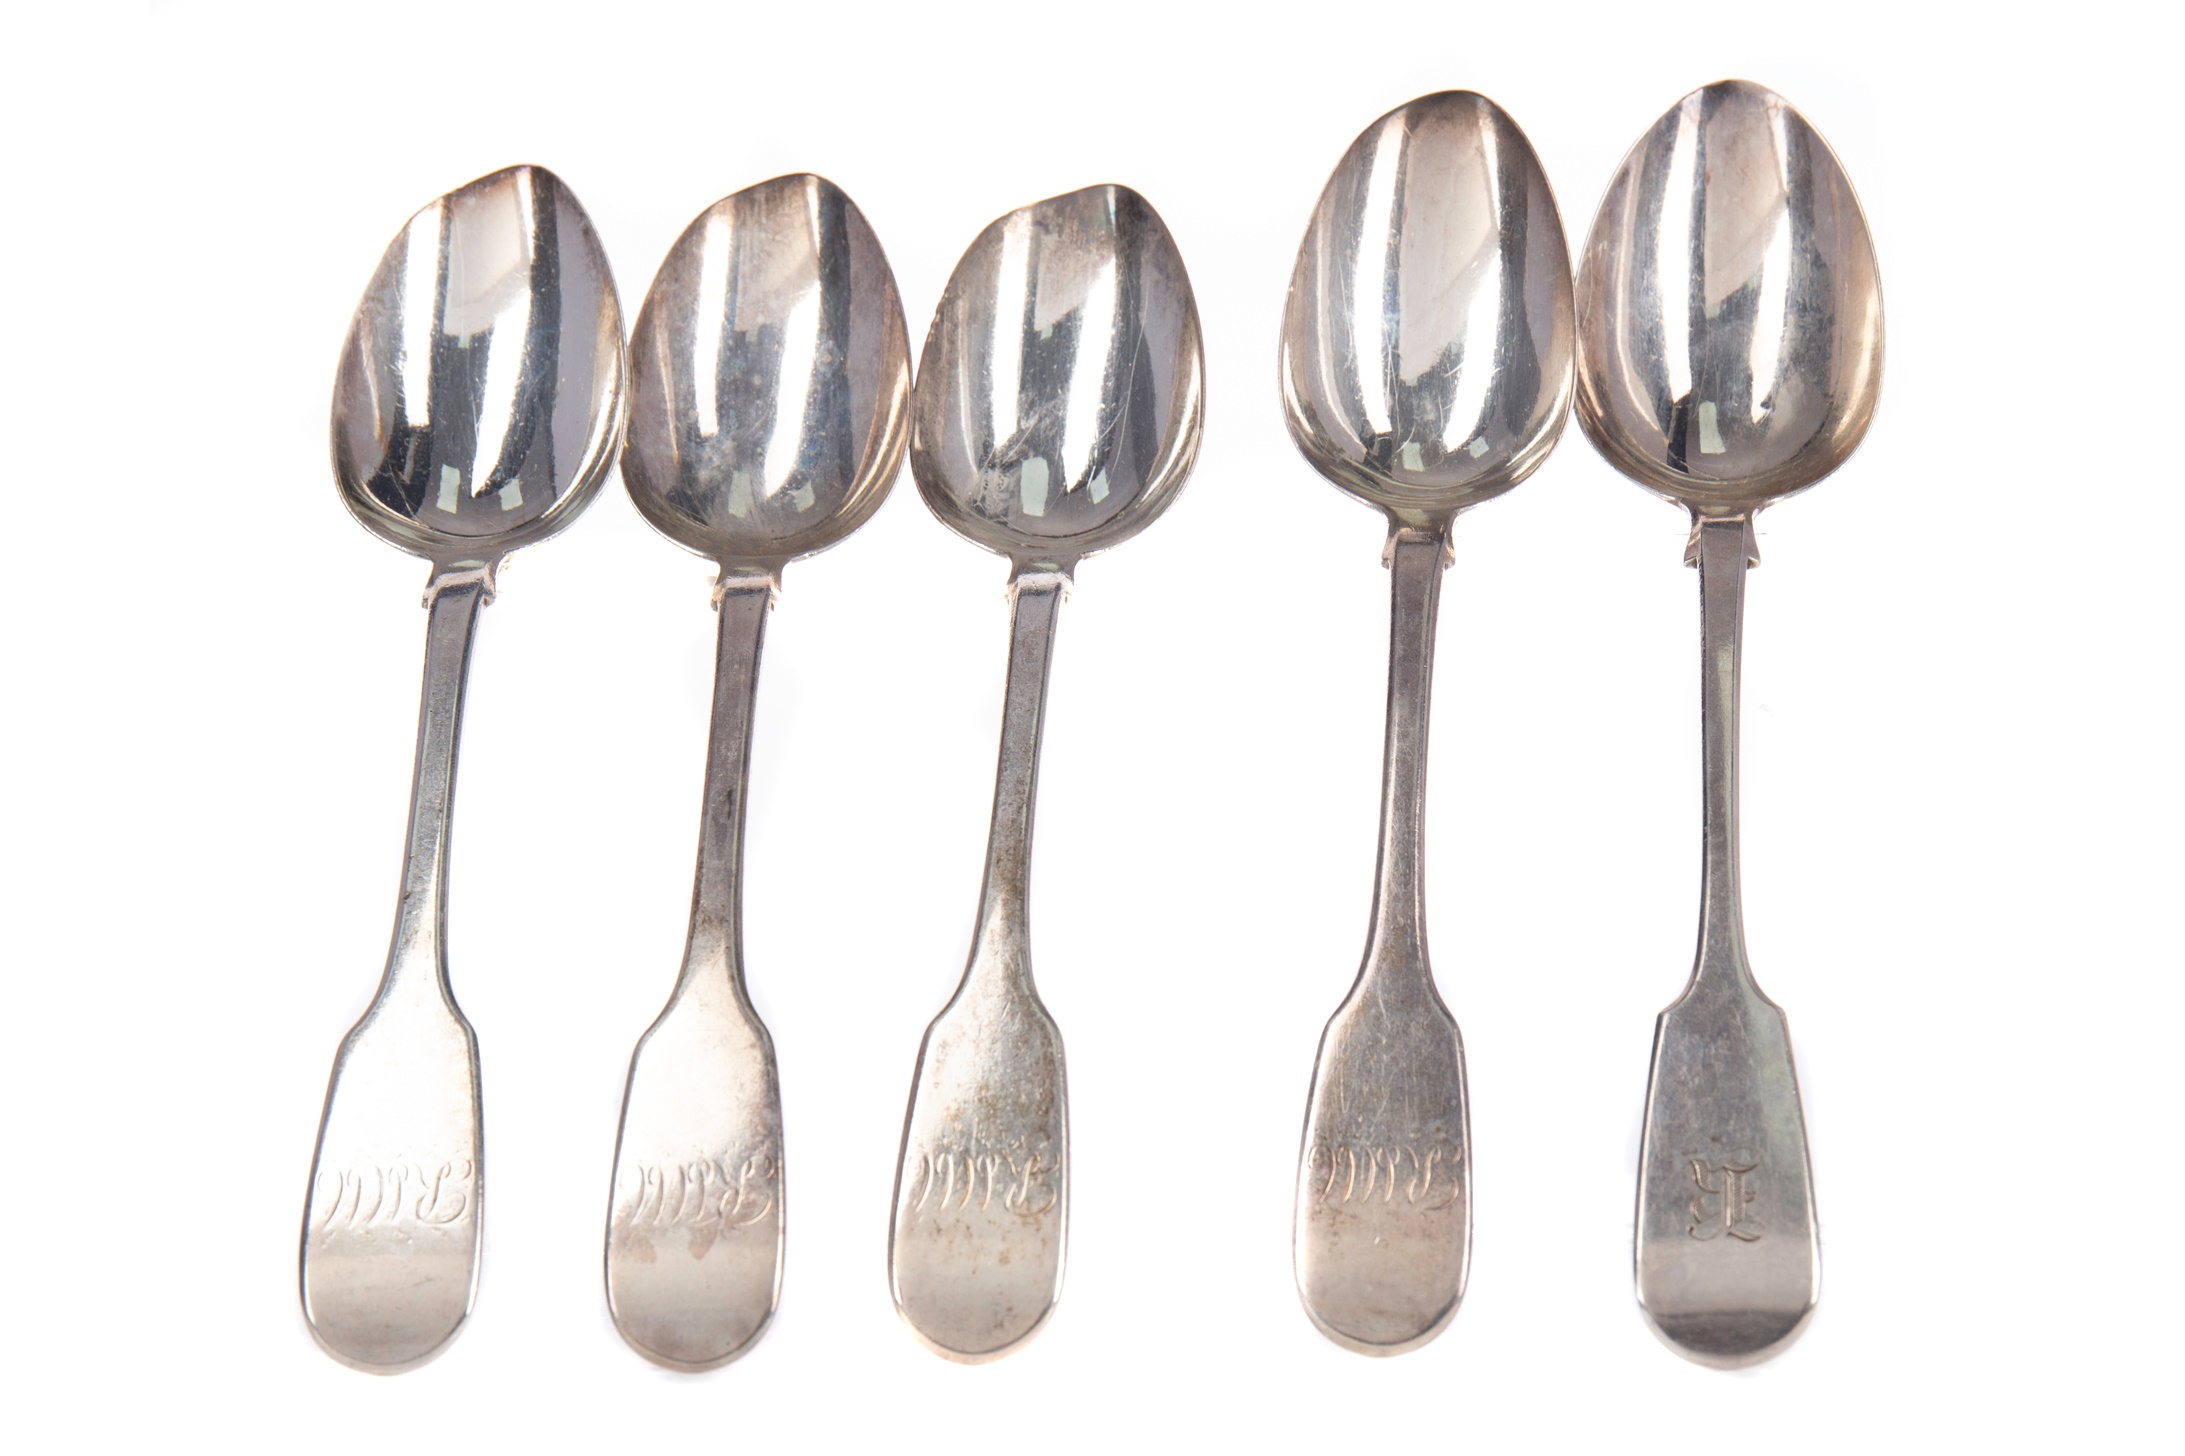 TWO SETS OF FOUR SILVER FIDDLE PATTERN TABLE SPOONS